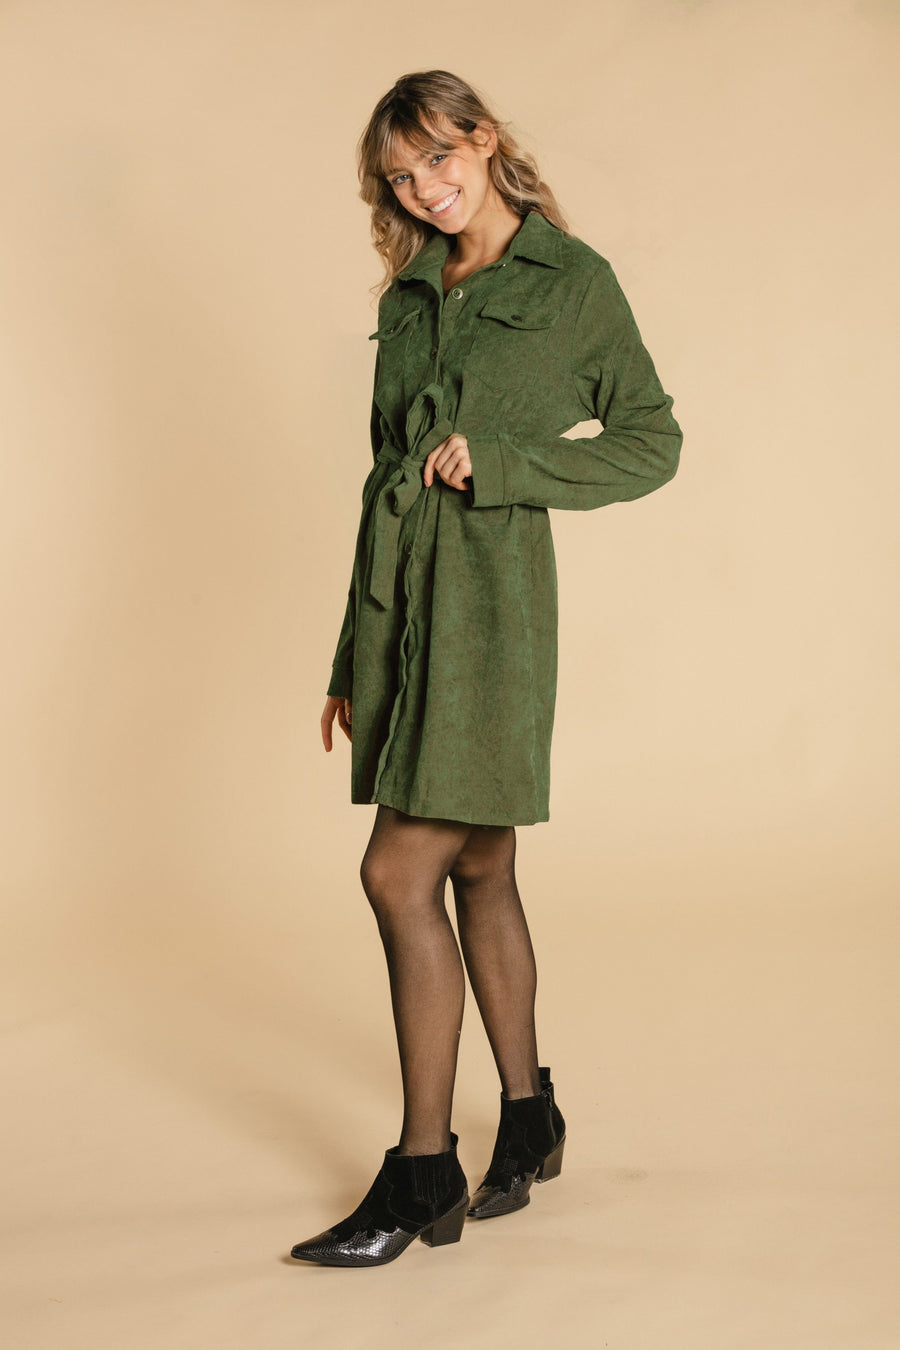 Corduroy dress - Khaki WOMANCE